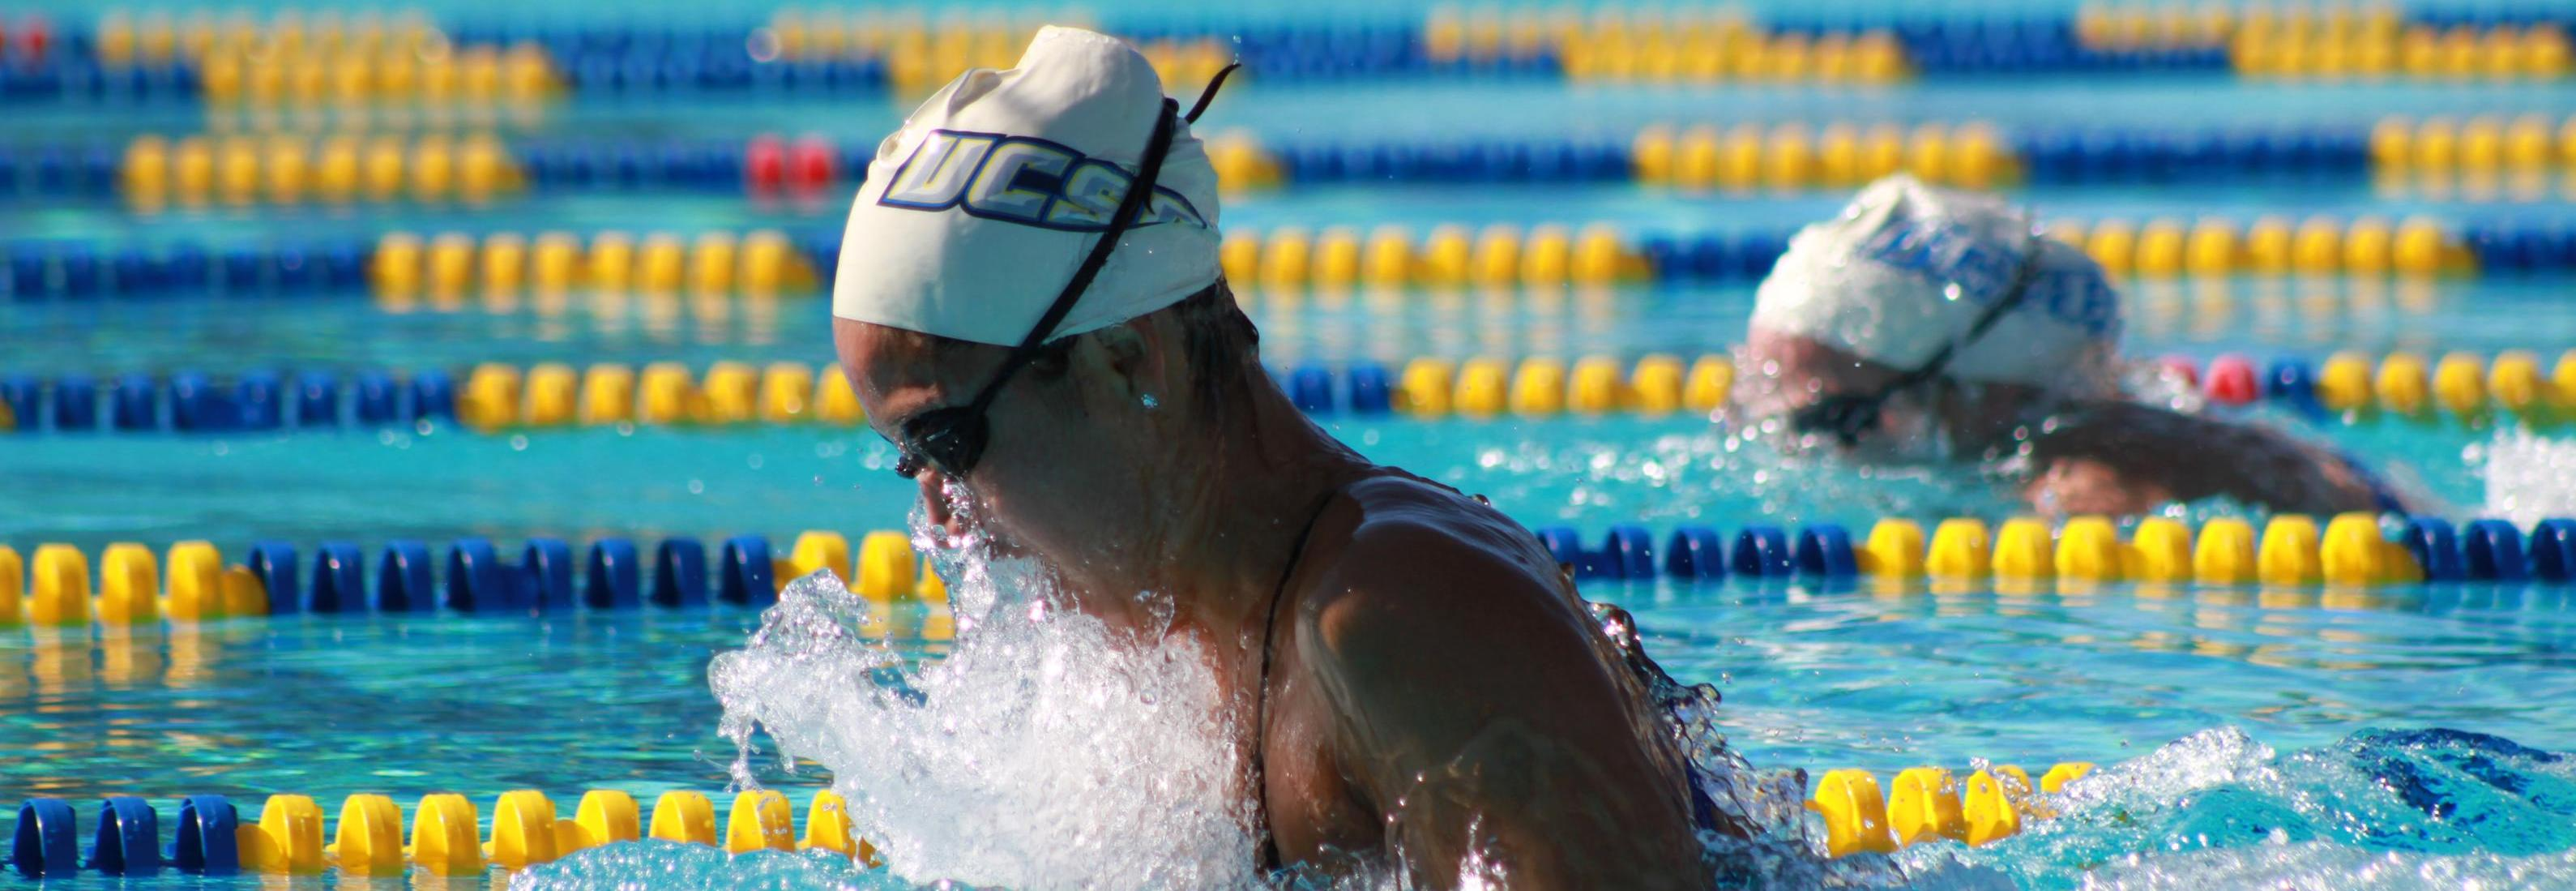 Three Gauchos Qualify for 2012 Olympic Trials